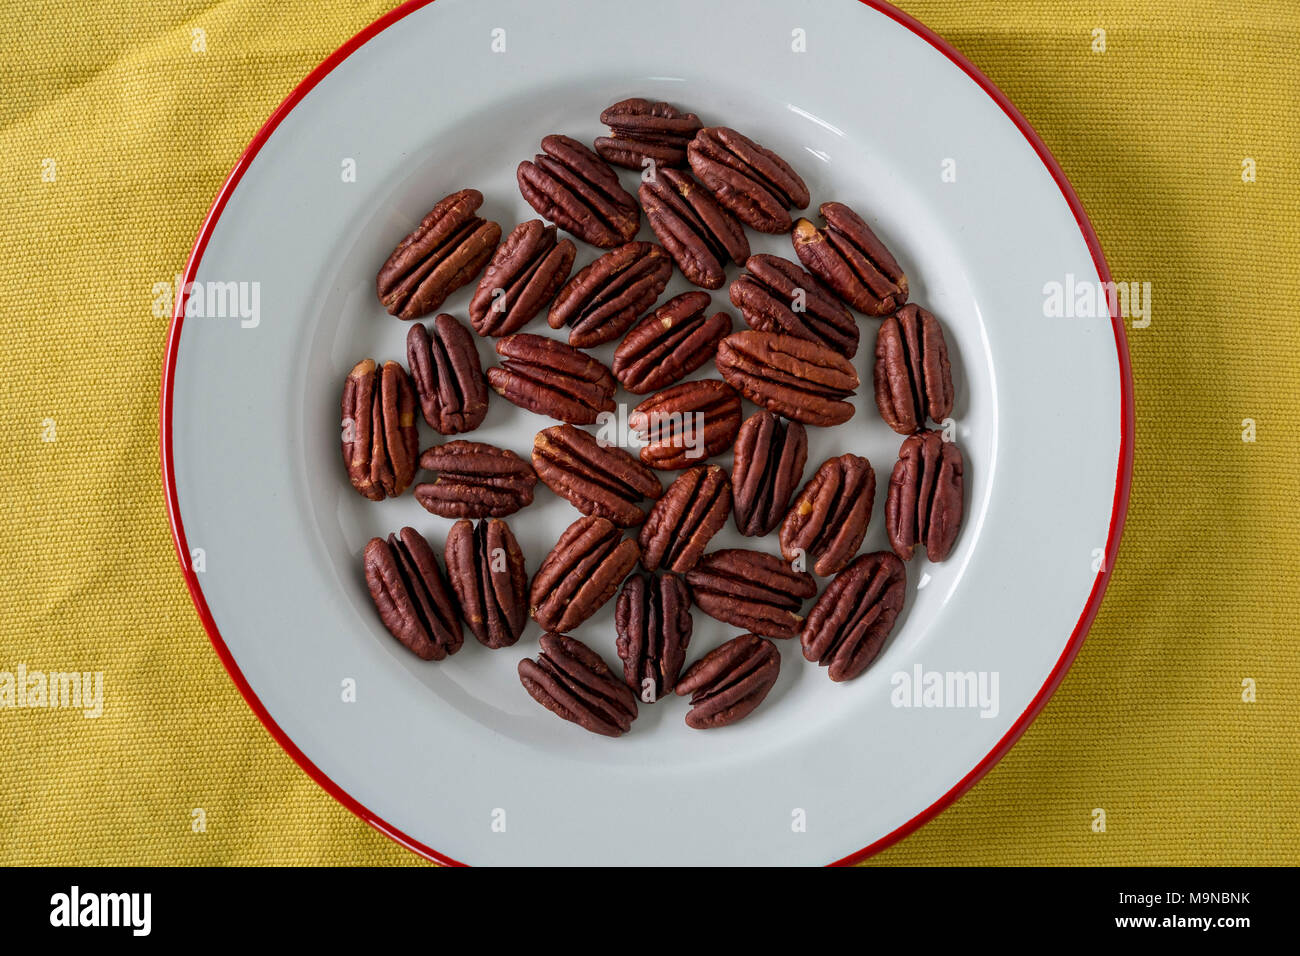 Toasted Pecans - Stock Image